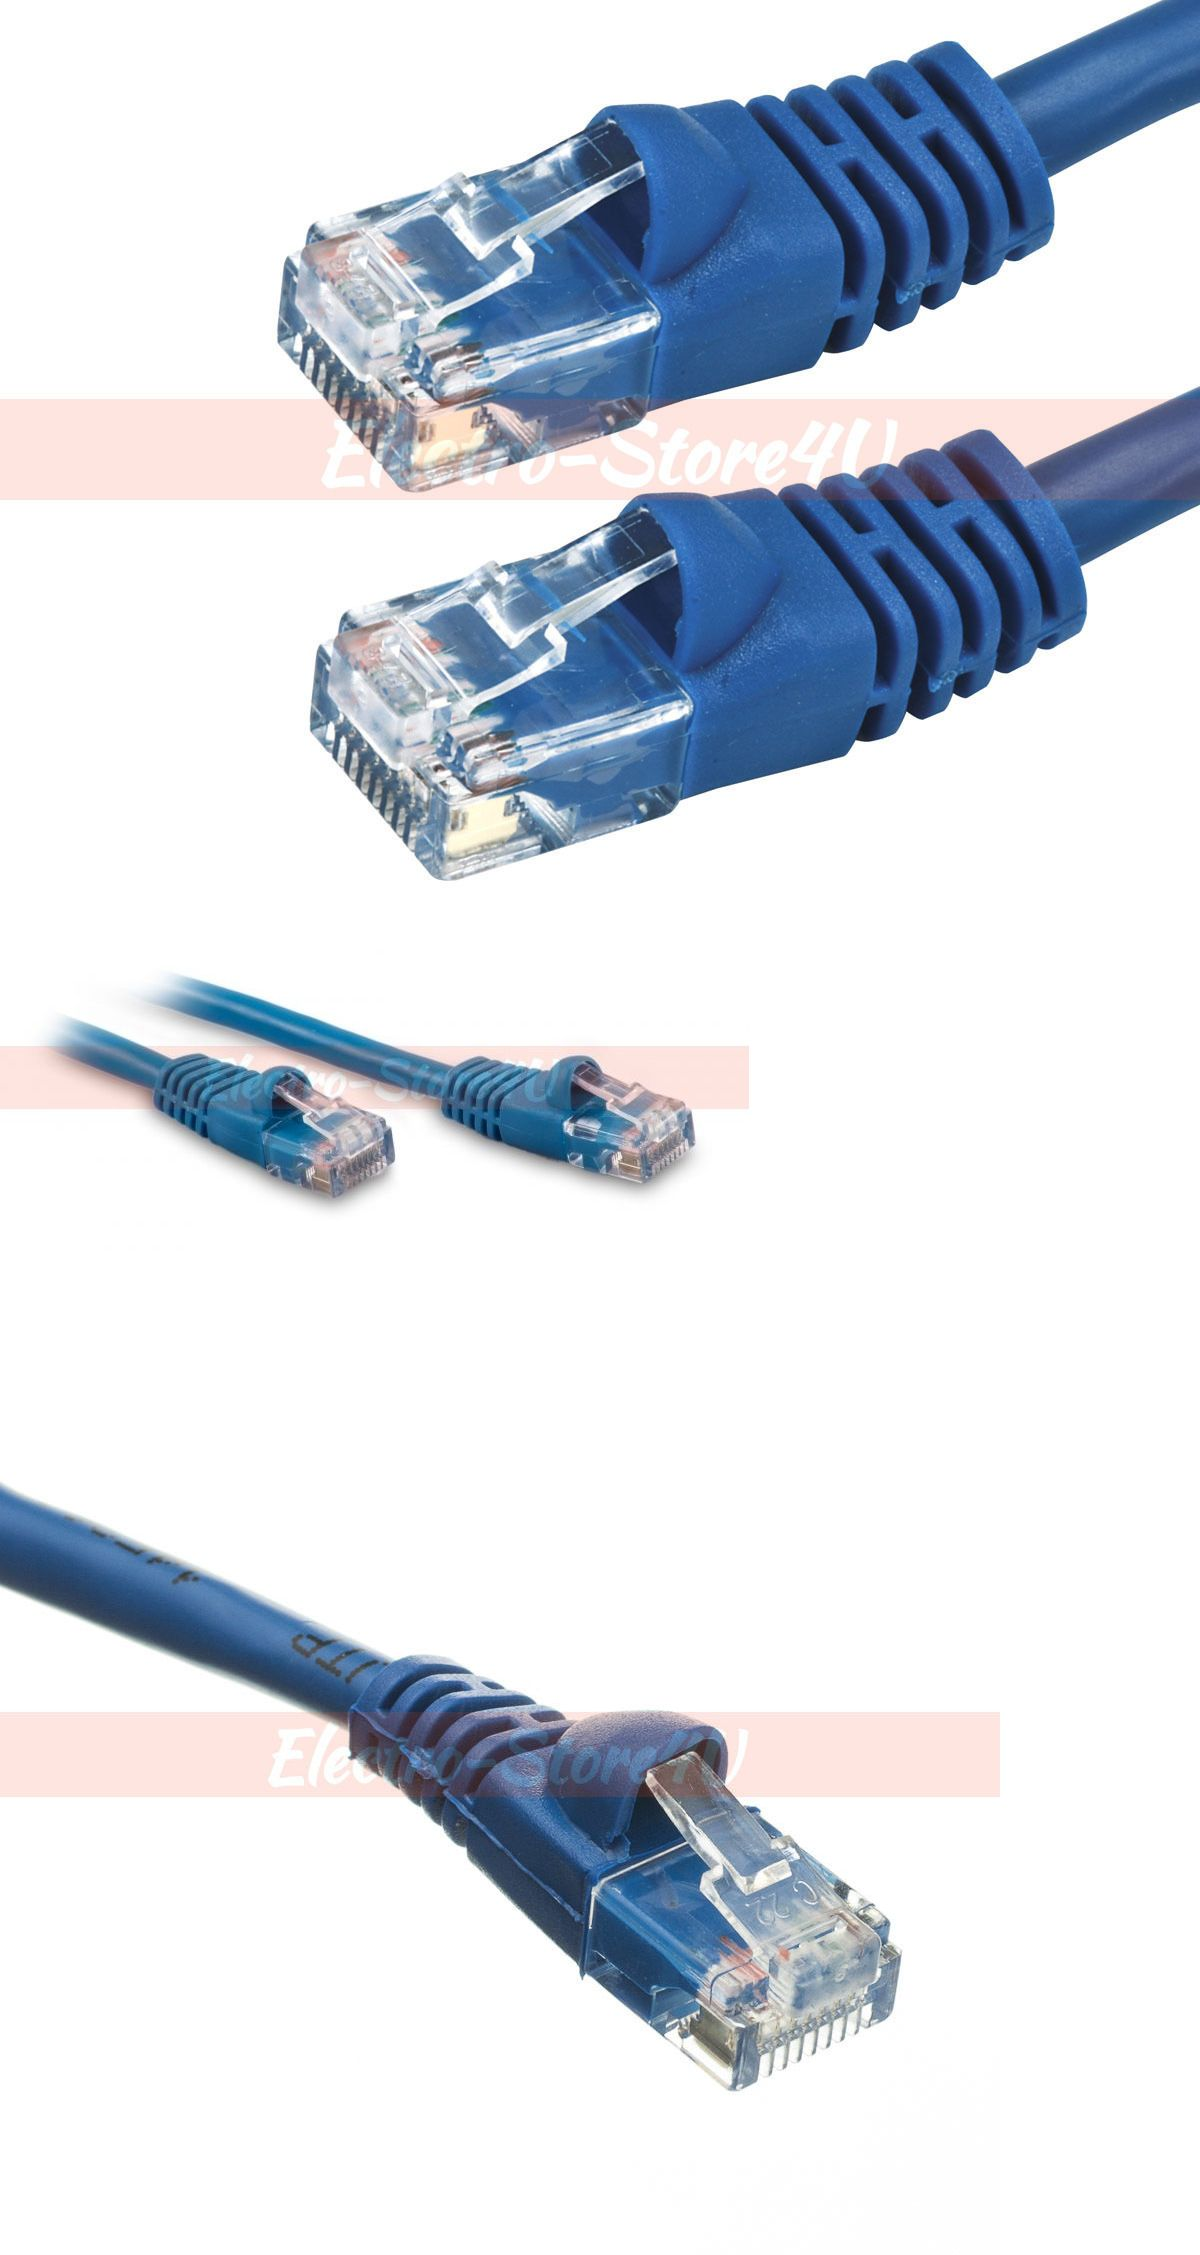 Ethernet Cables Rj 45 8p8c 64035 Cat6 Ethernet Patch Cable 1 5 3 5 7 10 15 20 25 30 50 75 100 200 Lot Lan Blue Buy I Networking Cables Ethernet Cable Cable